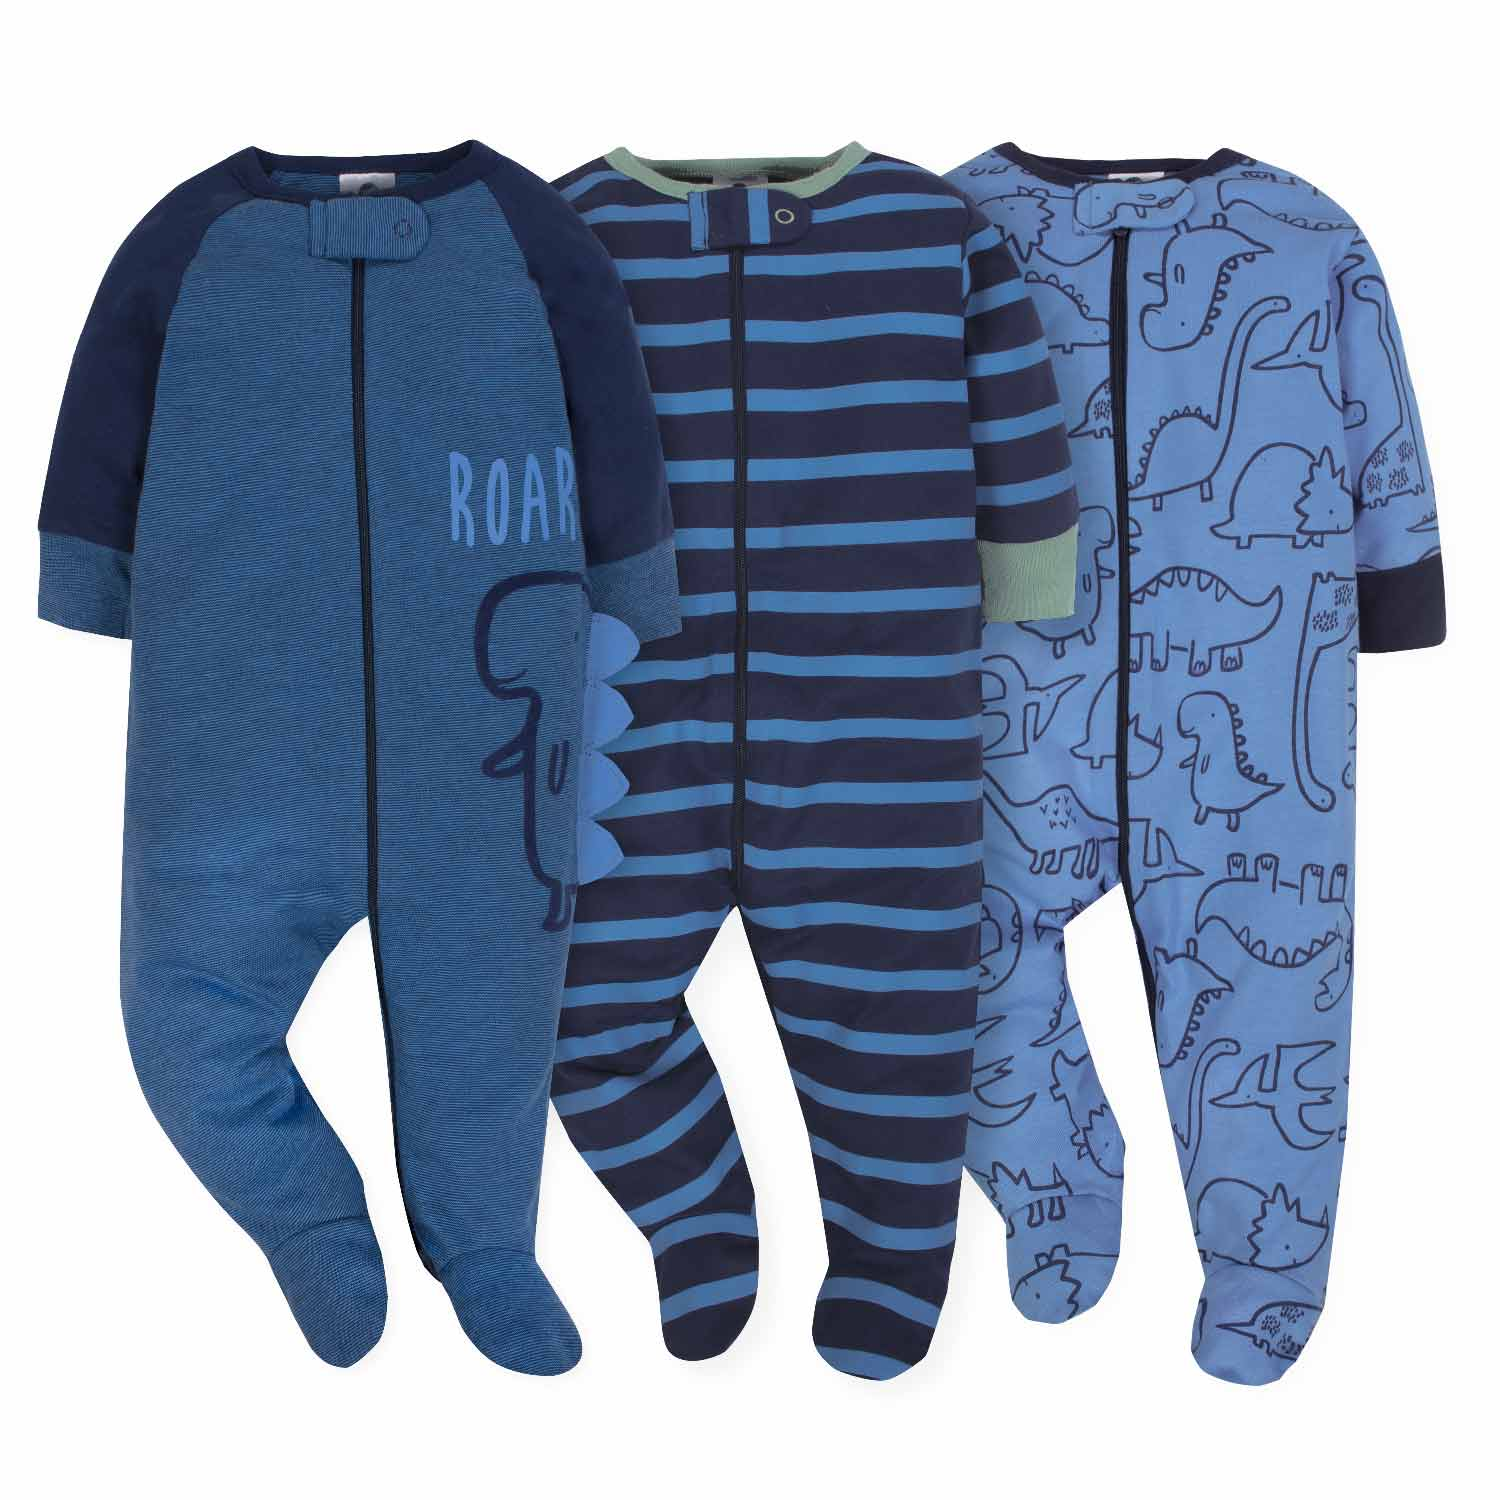 3-Pack Boys Dinosaur Sleep N' Play